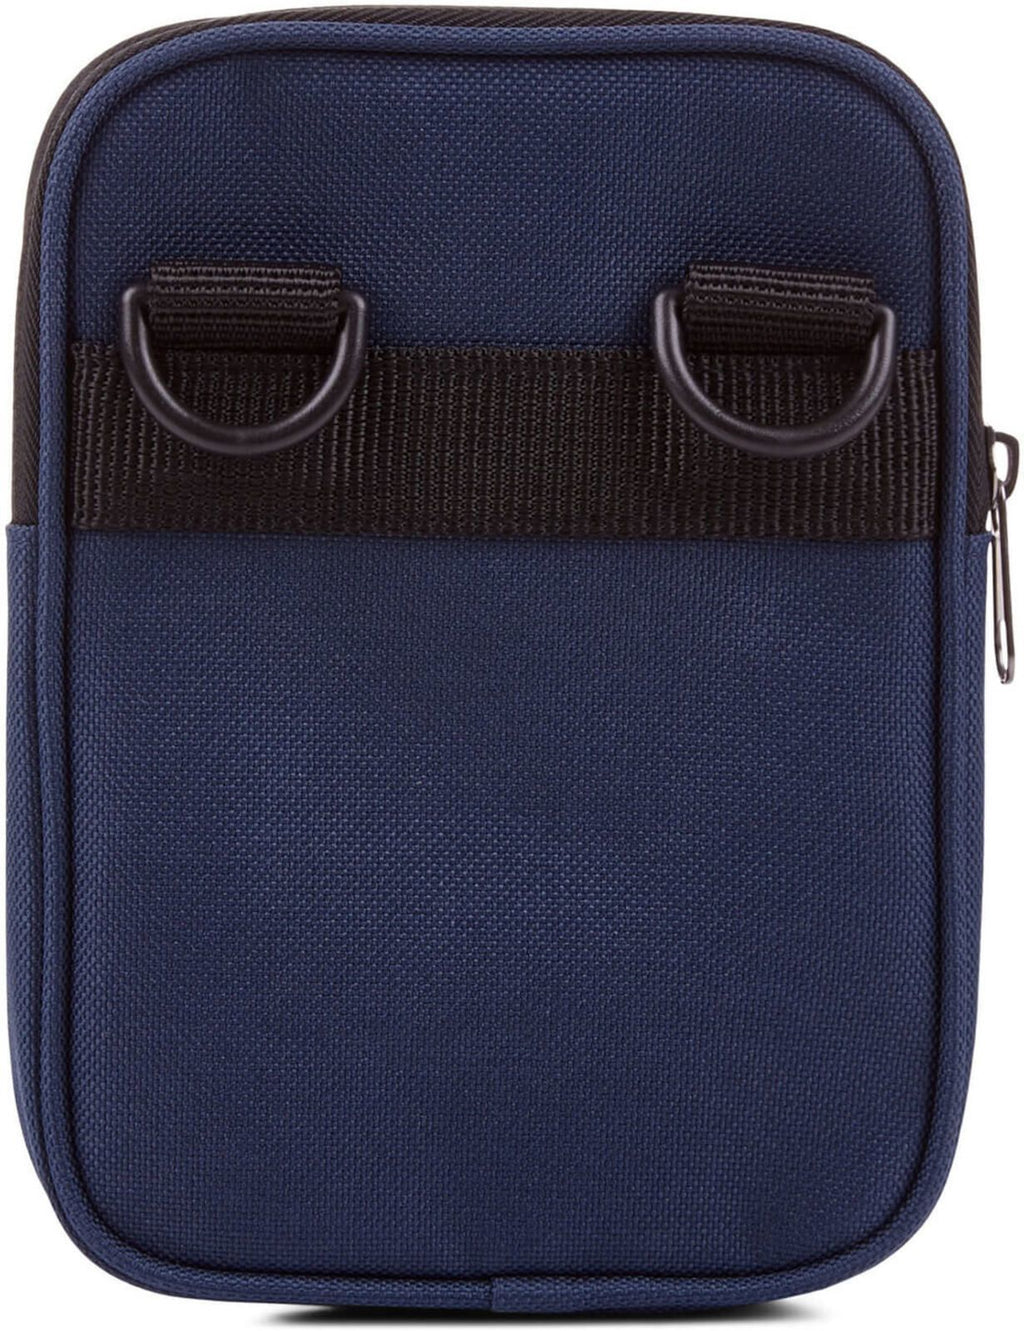 Lyle & Scott Cross Body Messenger Bag Navy